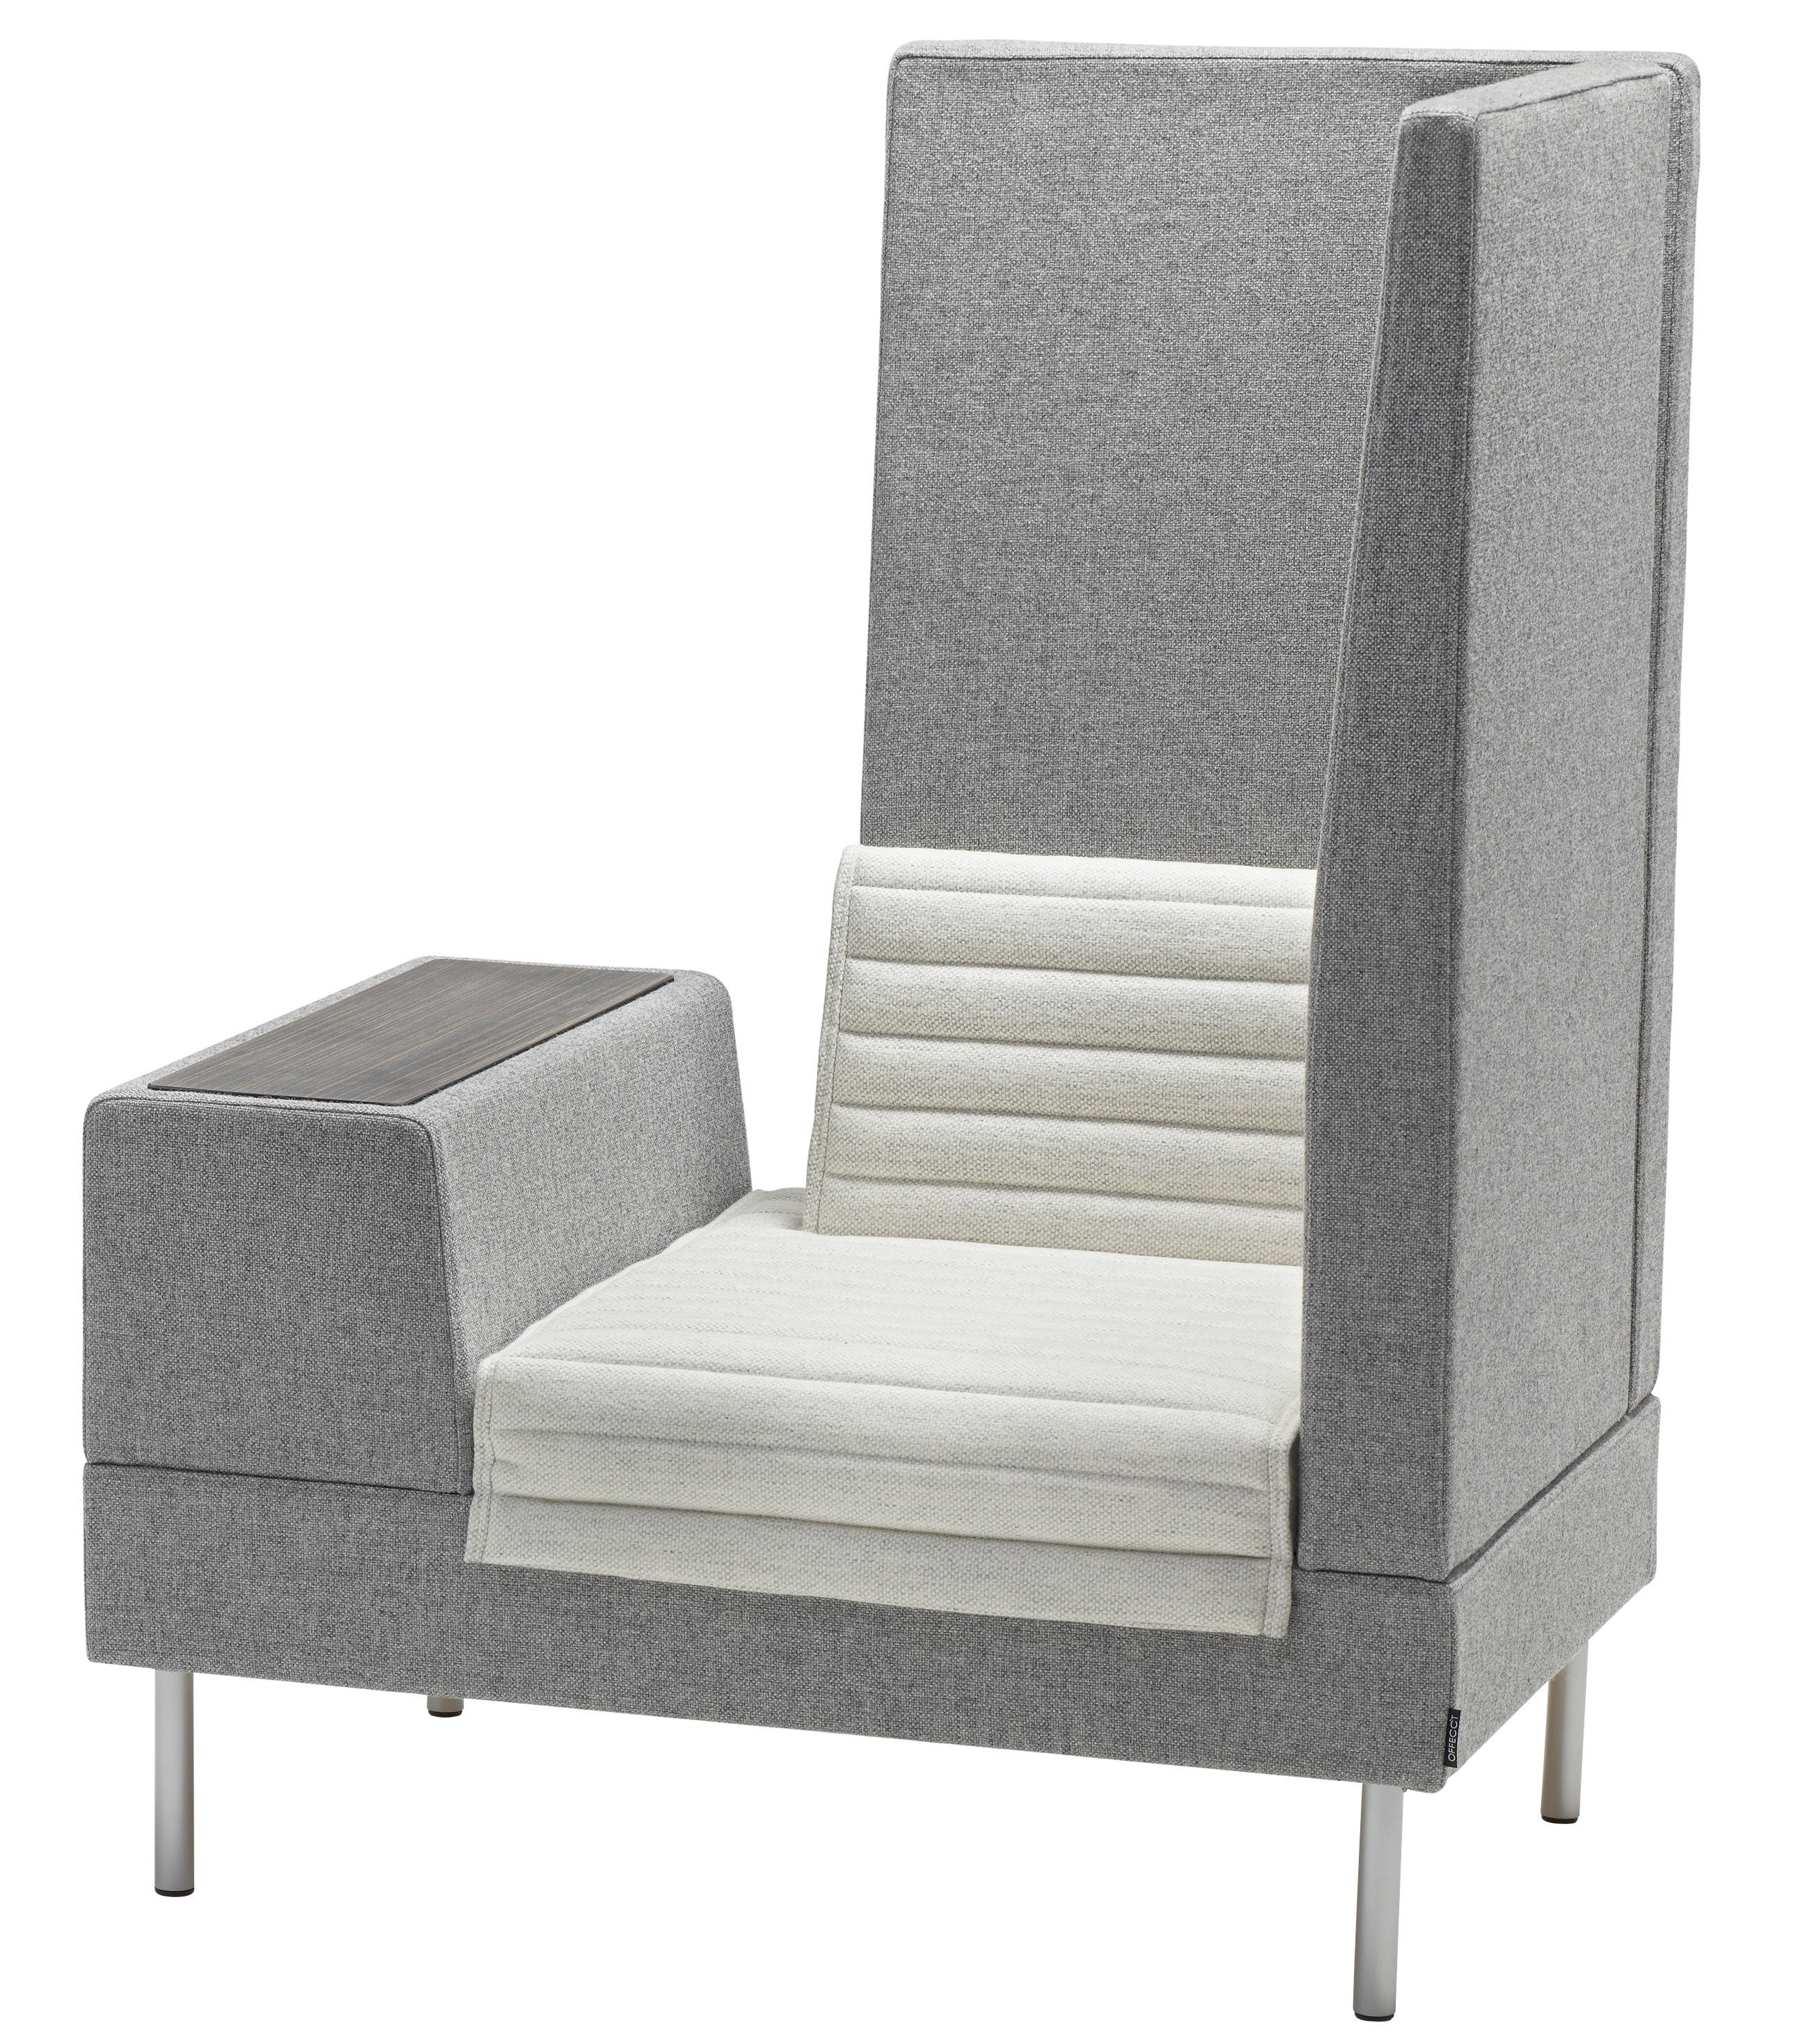 fauteuil rembourr smallroom angle droit l 100 cm gris angle droit offecct. Black Bedroom Furniture Sets. Home Design Ideas